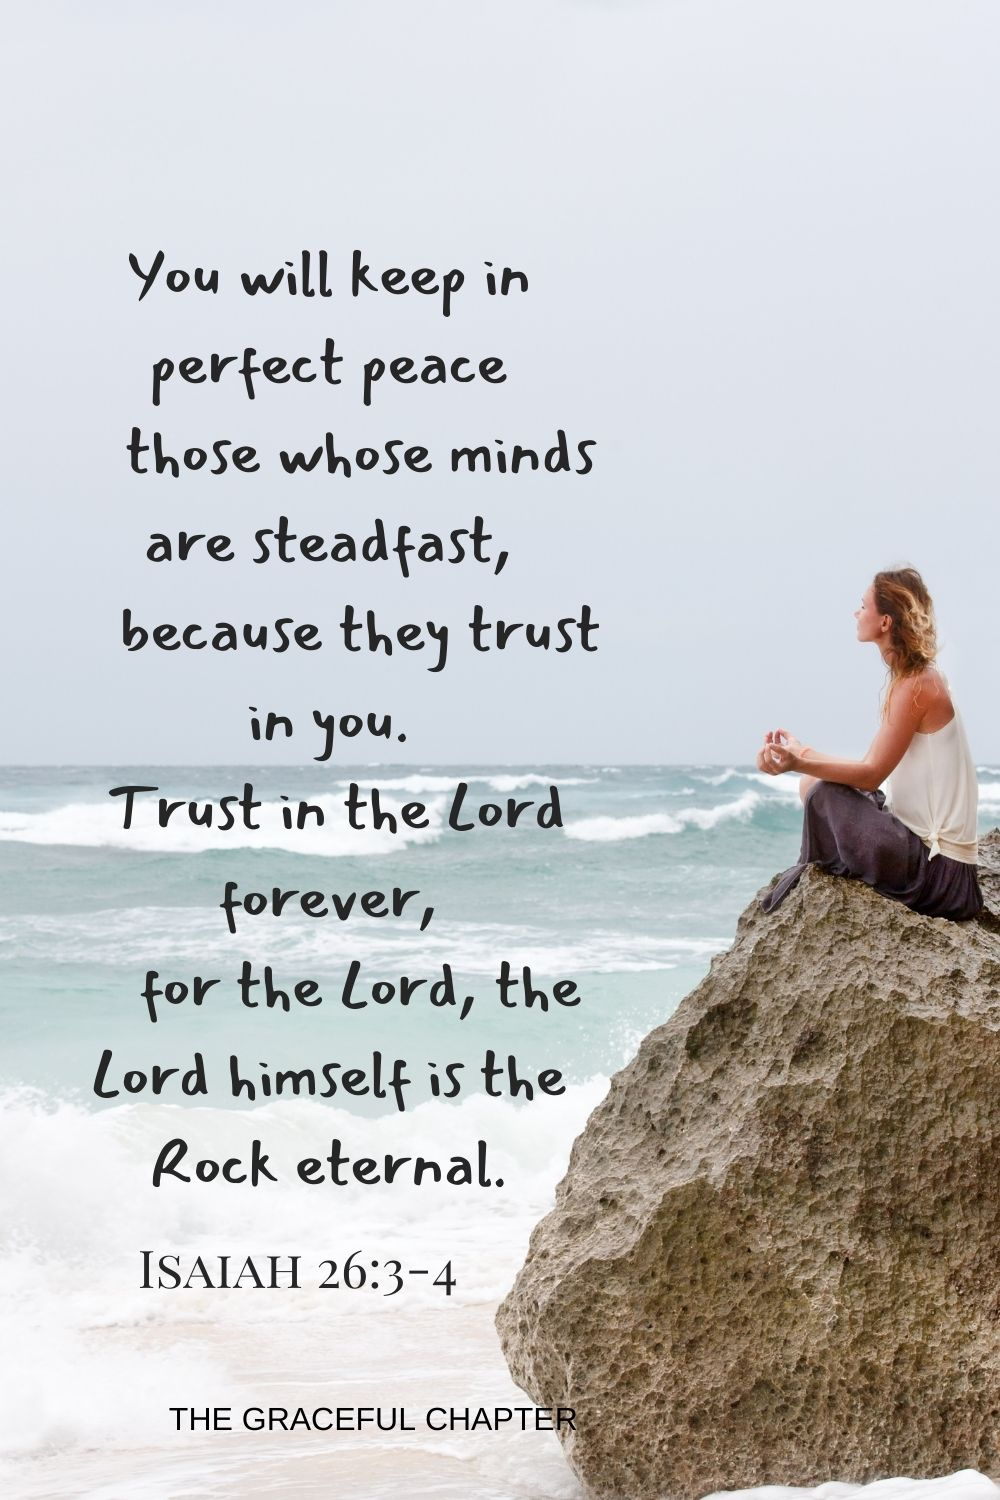 You will keep in perfect peace those whose minds are steadfast because they trust in you. Trust in the Lord forever, for the Lord, the Lord himself is the Rock eternal.  Isaiah 26:3-4